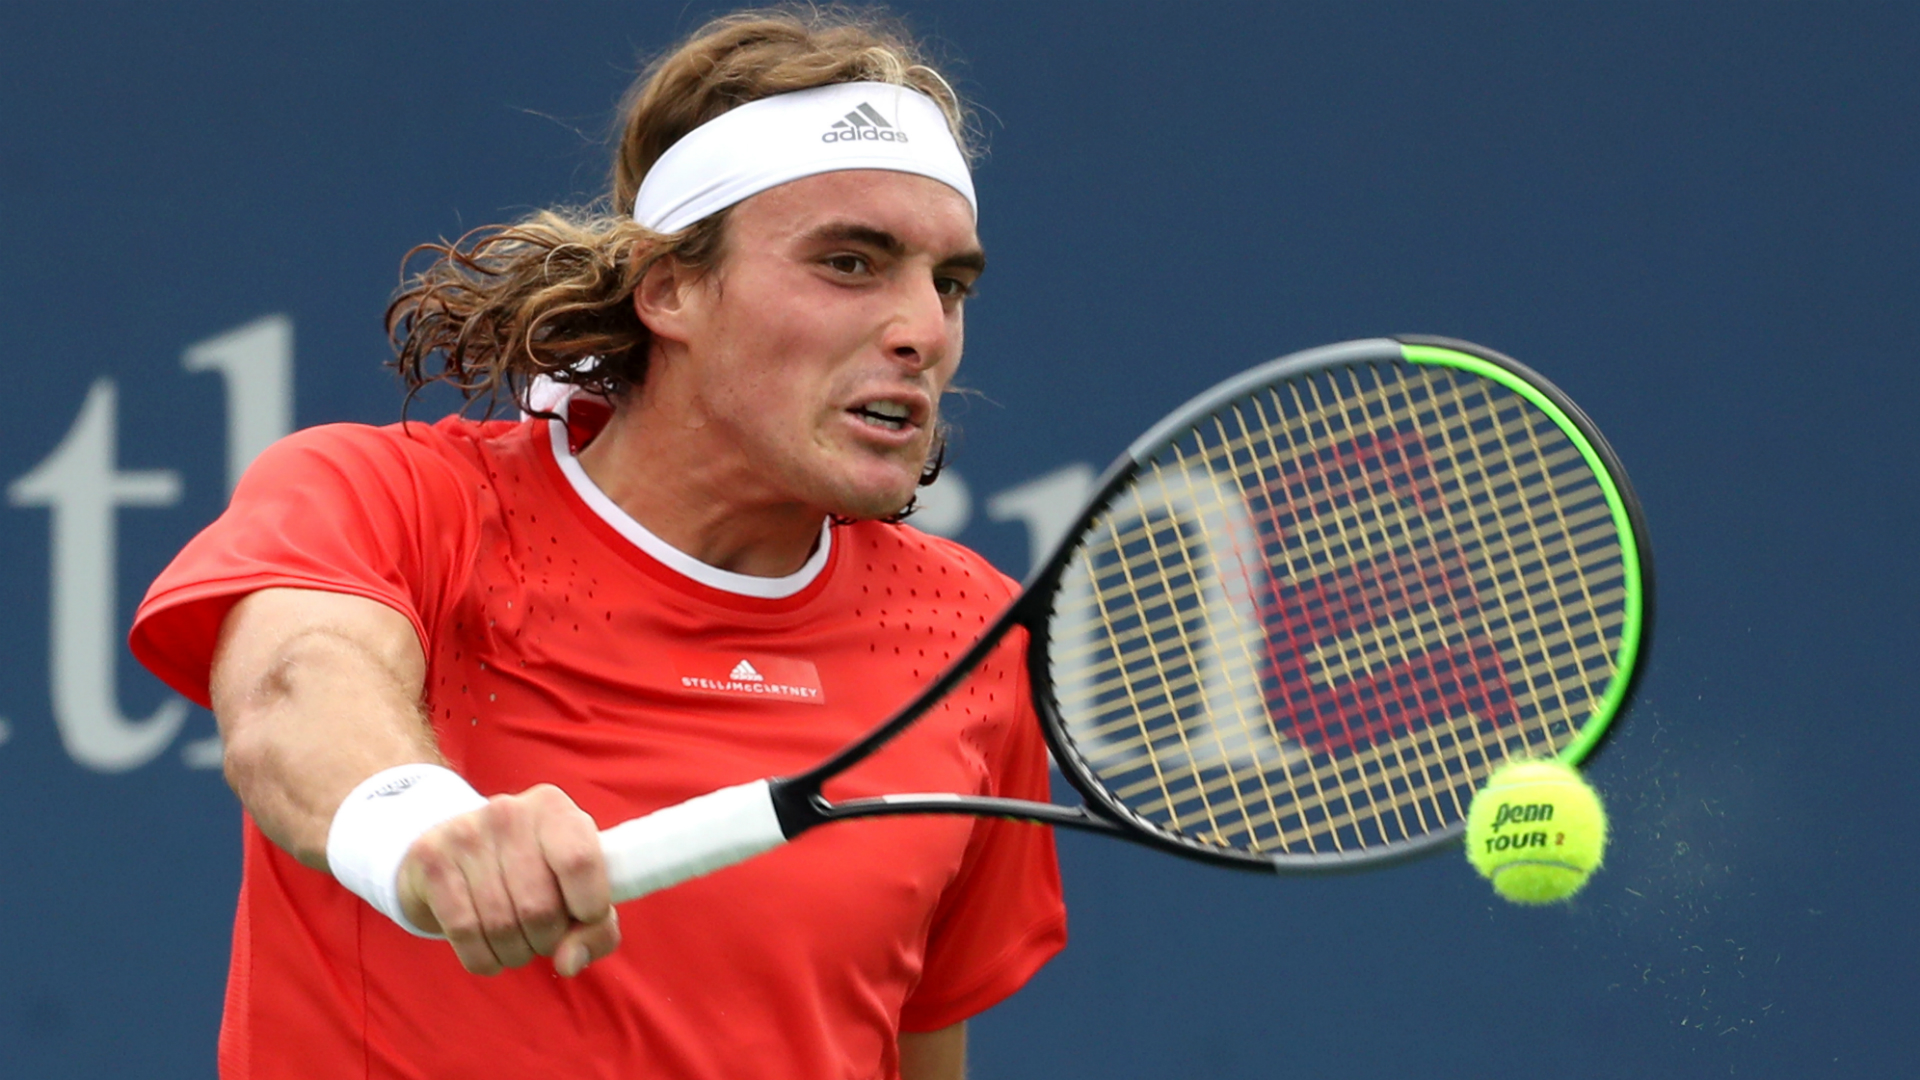 Tsitsipas and Zverev crash out as Rublev books Federer date